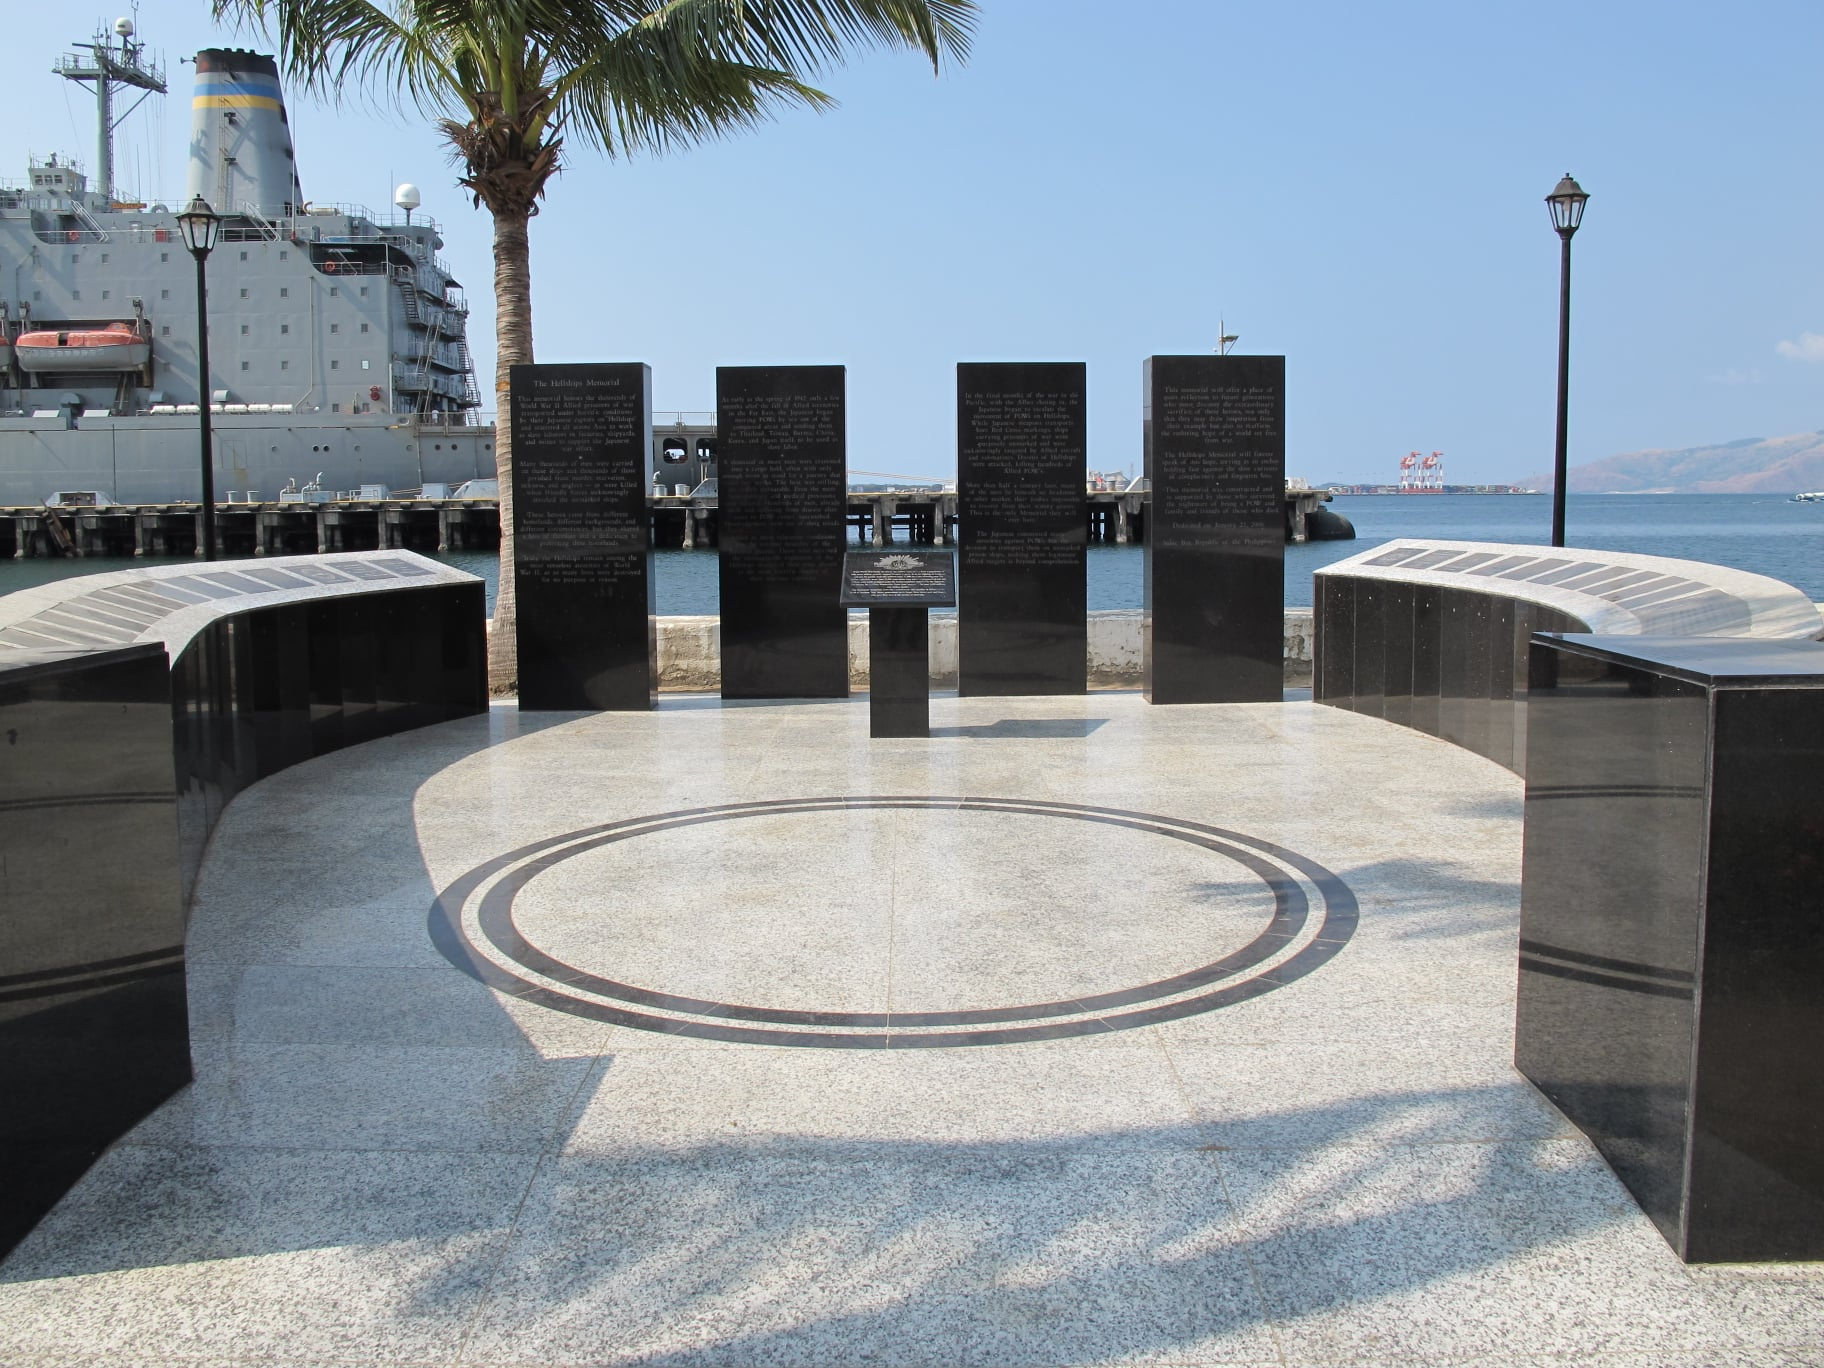 The Hell Ships Memorial in Subic, which honors the World War II Prisoners of War.